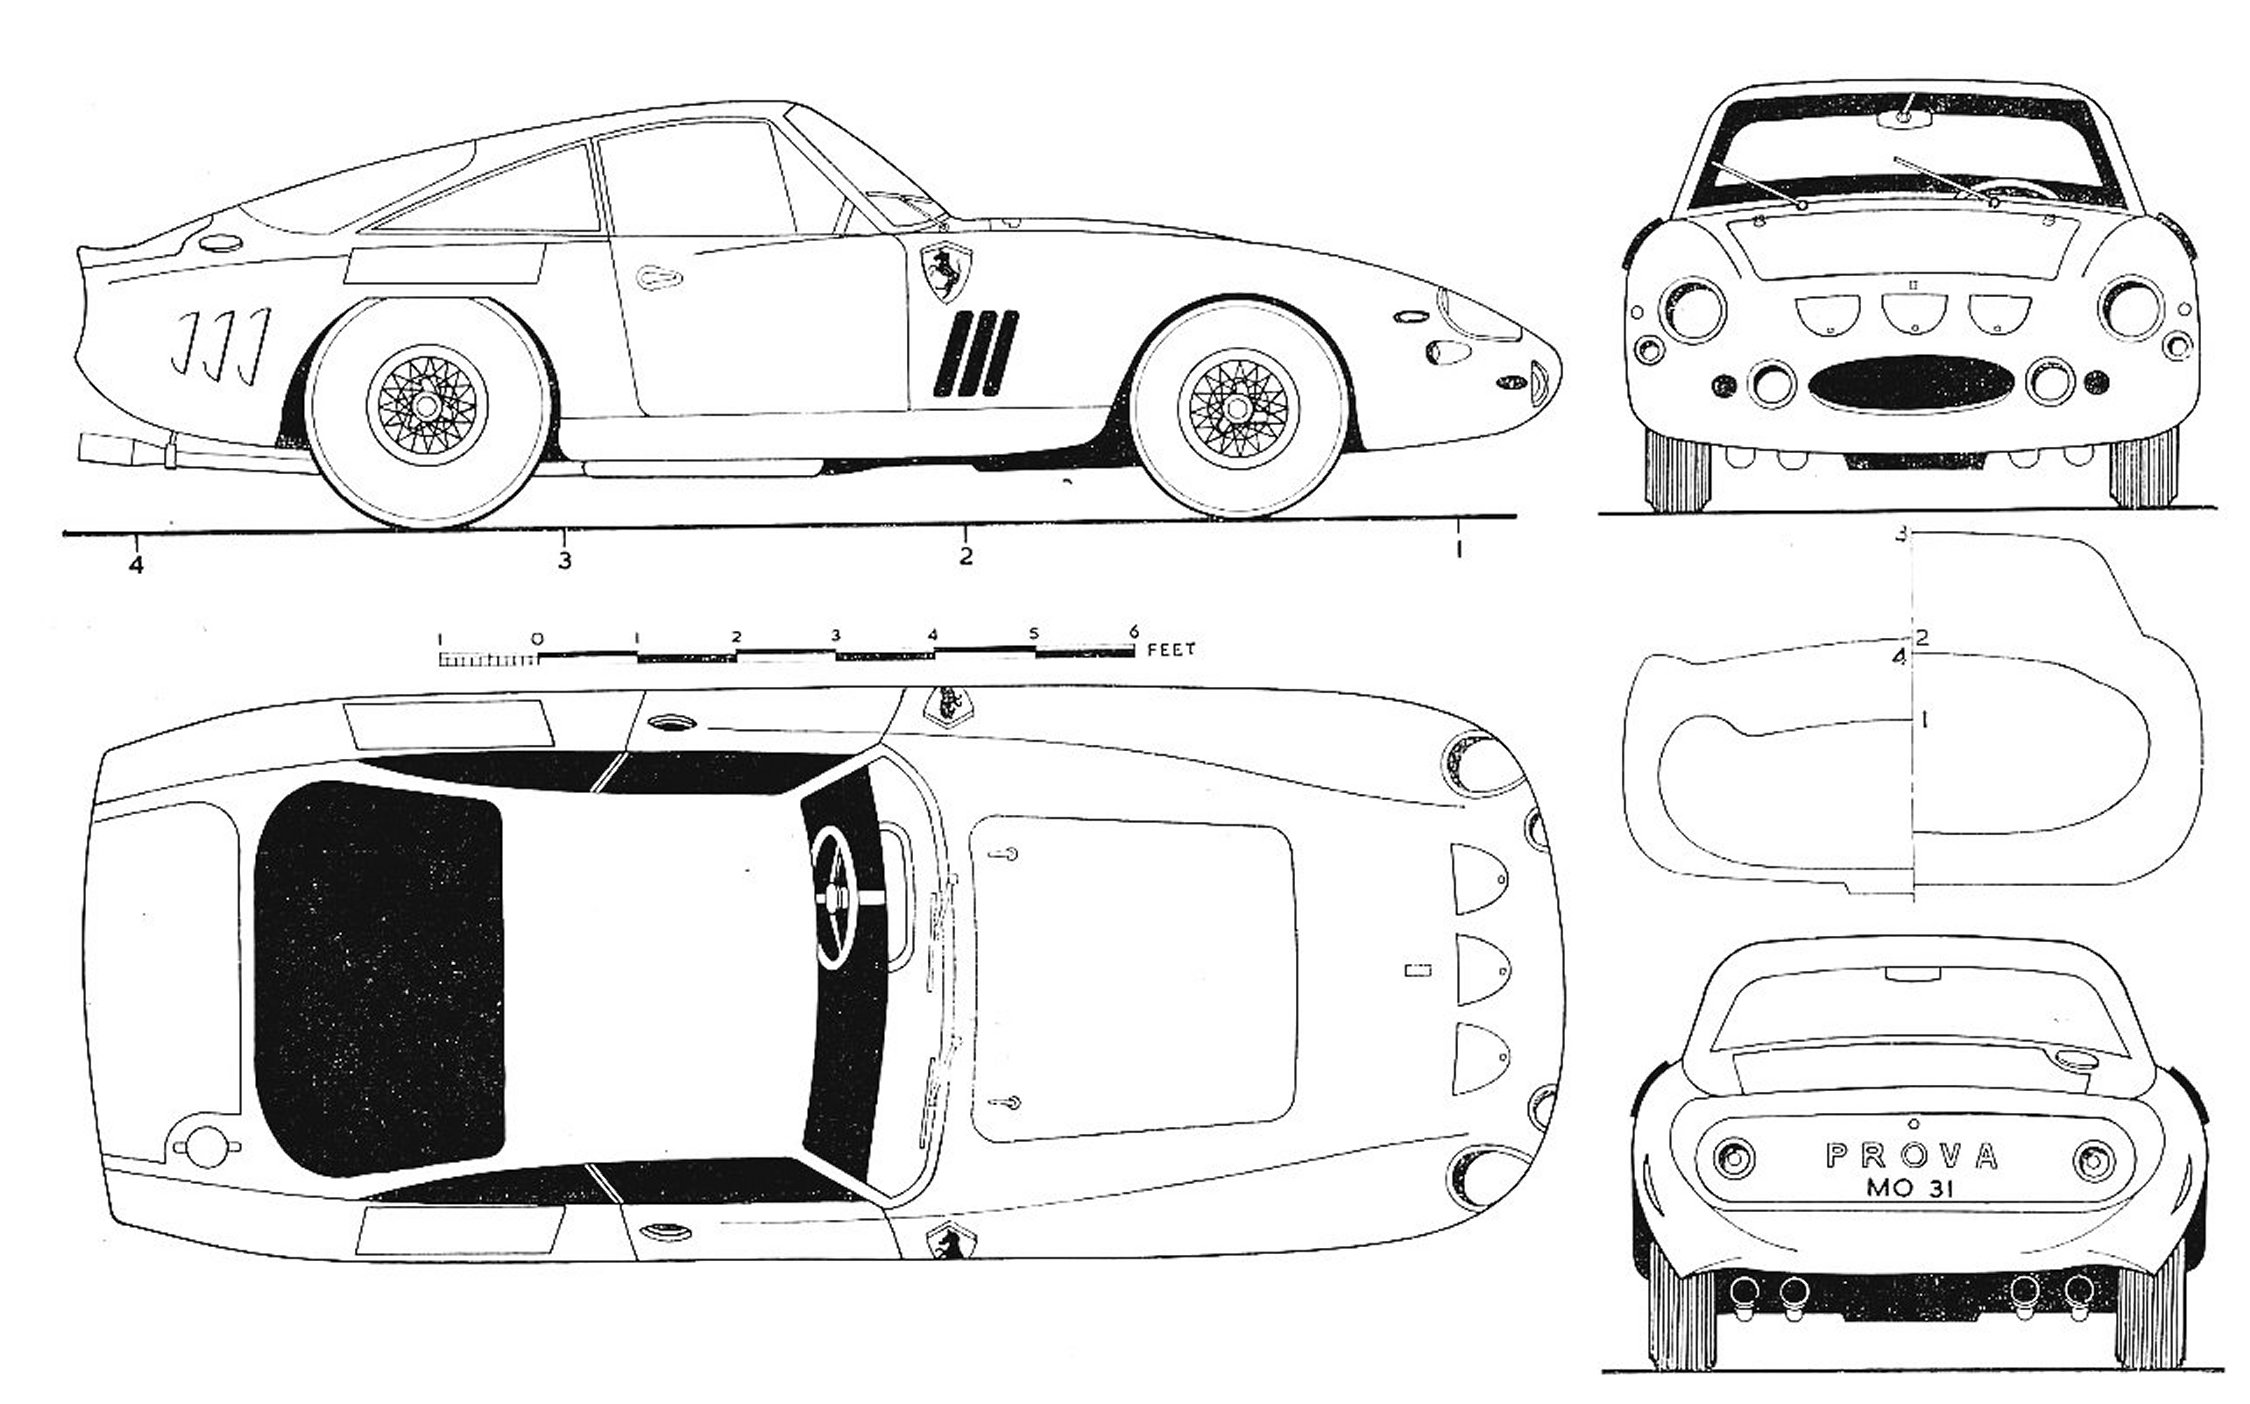 Ferrari 330 LM Berlinetta blueprint